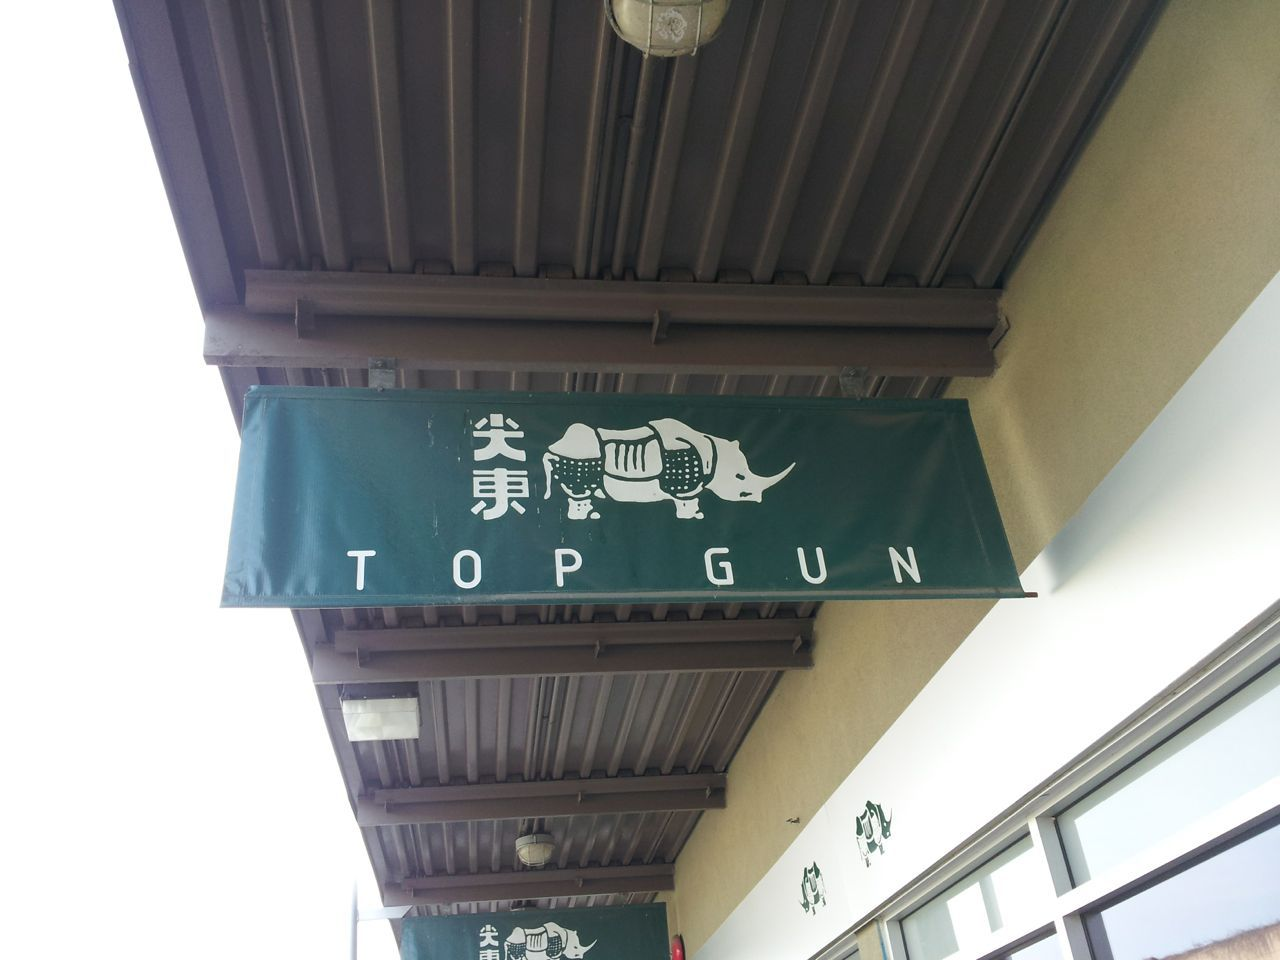 J&C Top Gun Restaurant